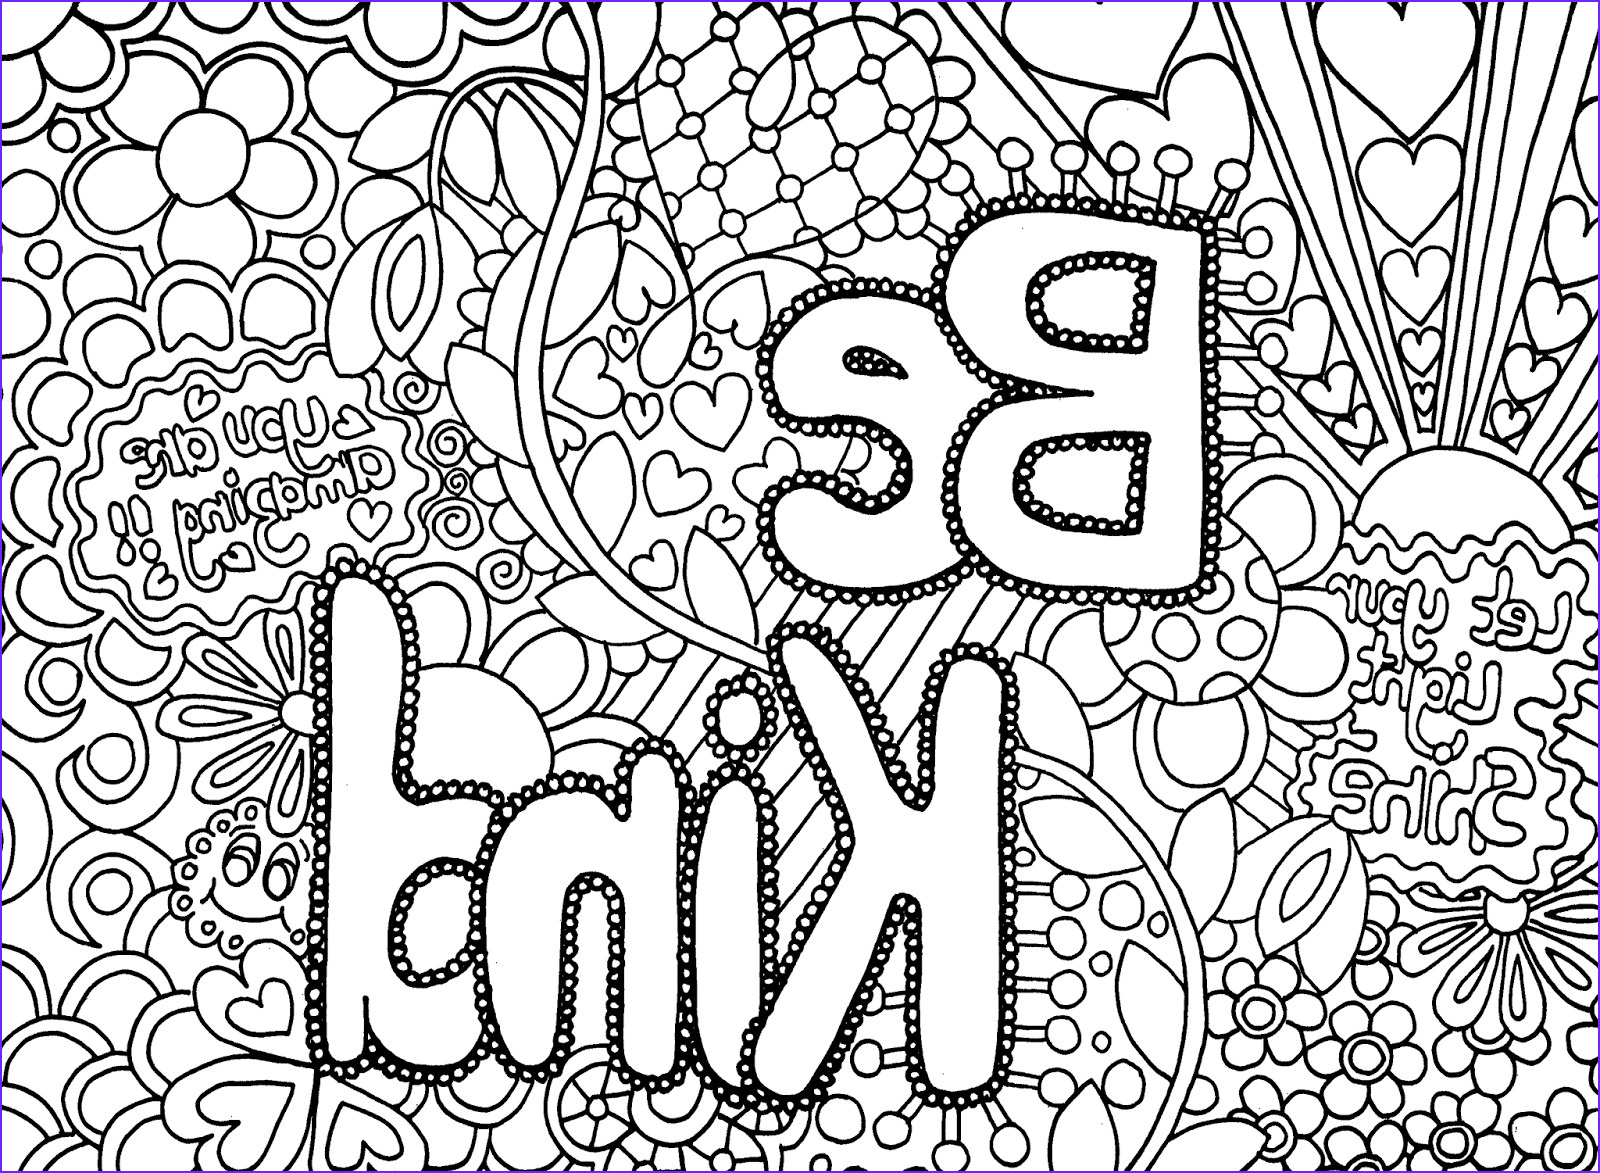 Diffucult Coloring Page Cool Image Difficult Hard Coloring Pages Printable